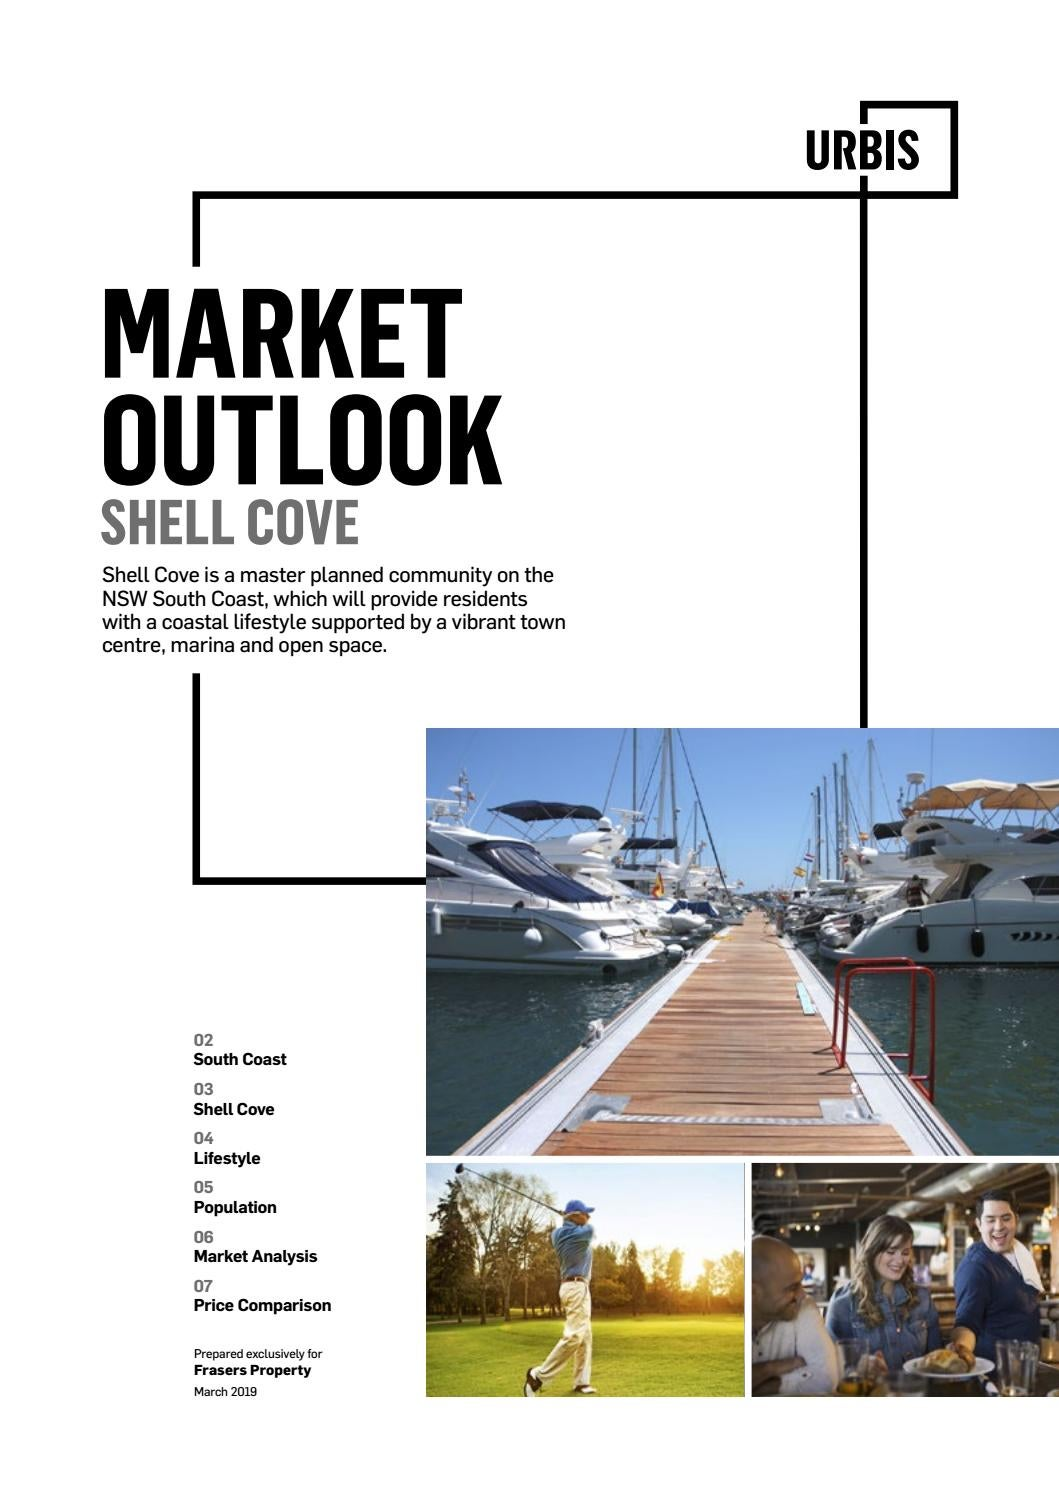 Shell Cove Market Outlook 2019 by Frasers Property Australia